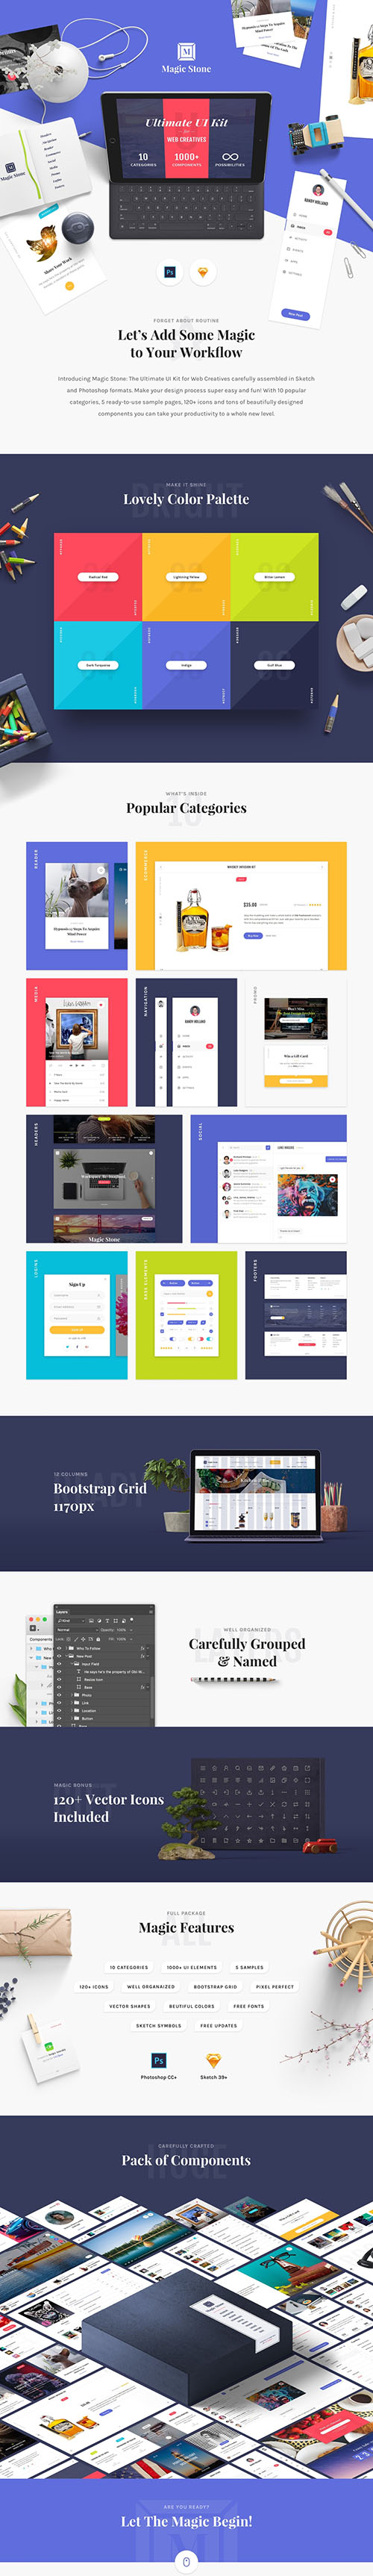 Magic Stone UI Kit - The Ultimate UI Kit for Web Creatives